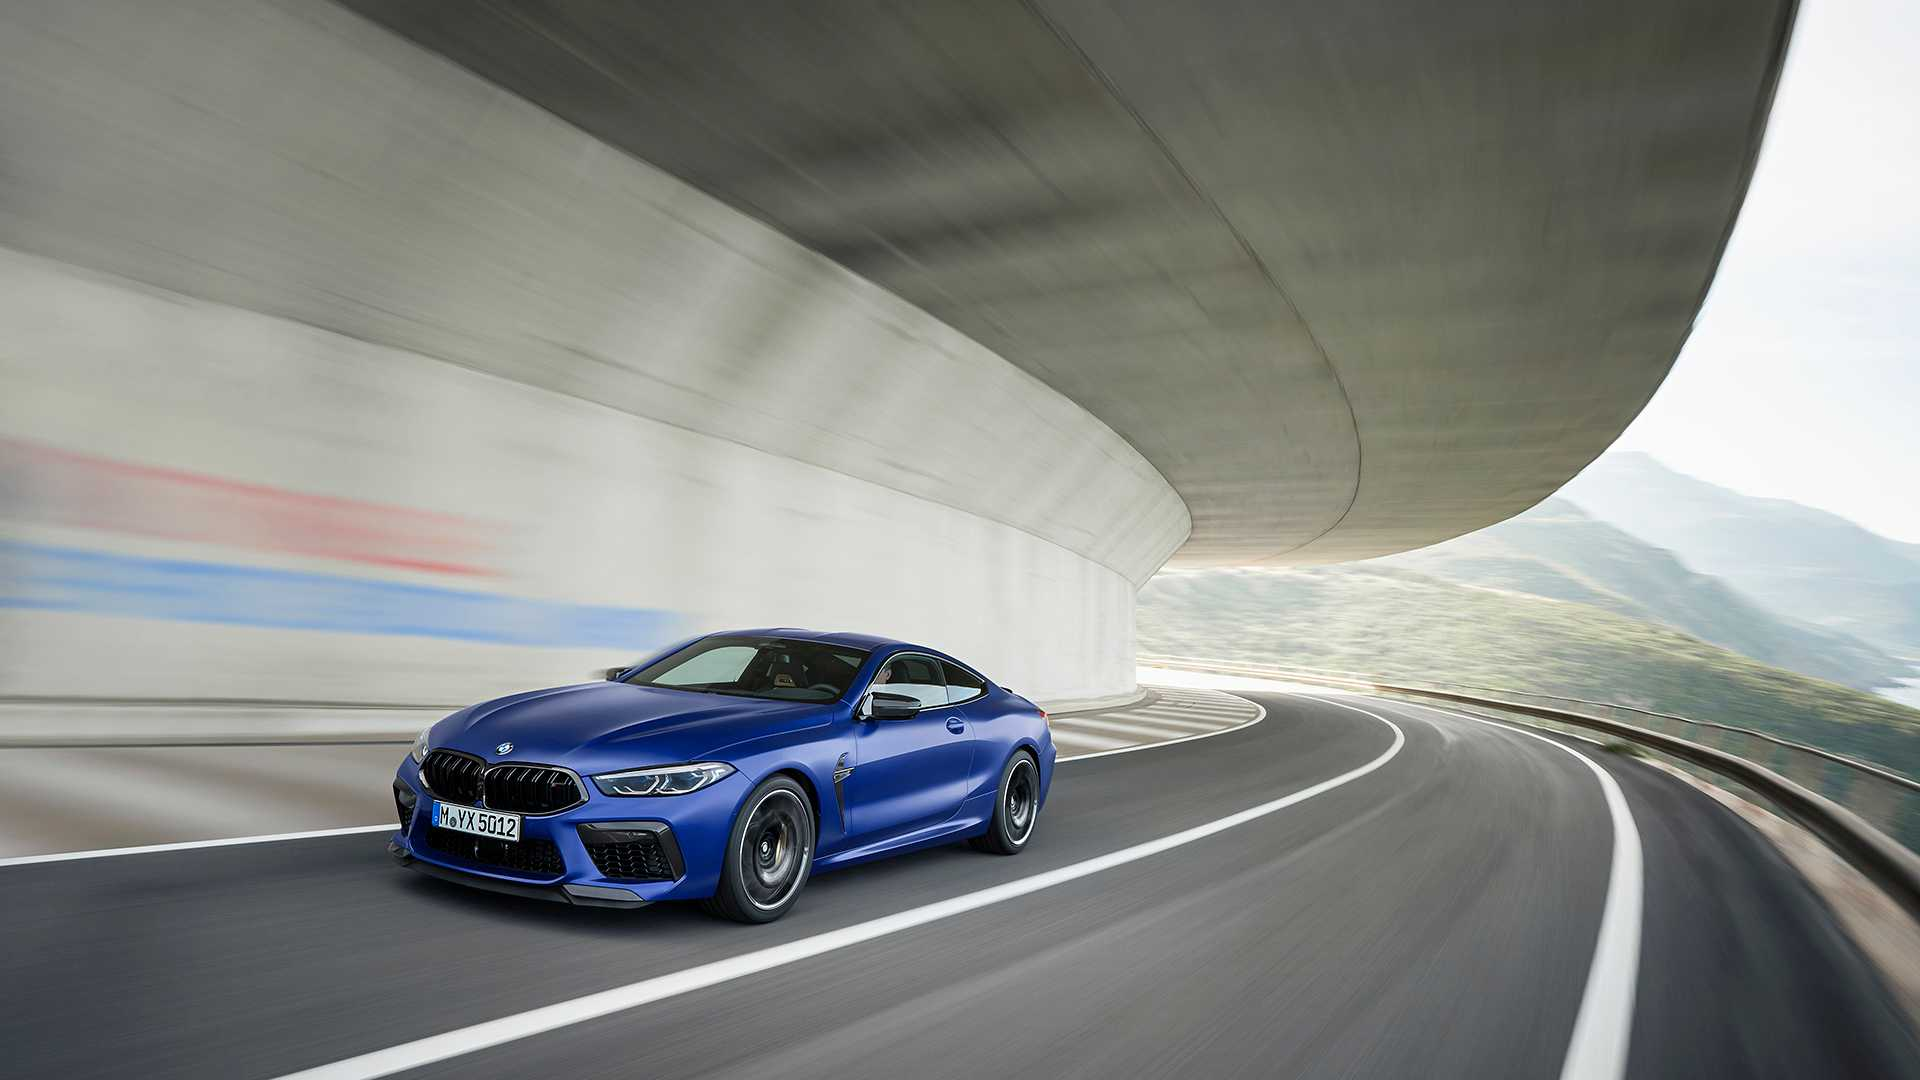 2019-bmw-m8-coupe-49